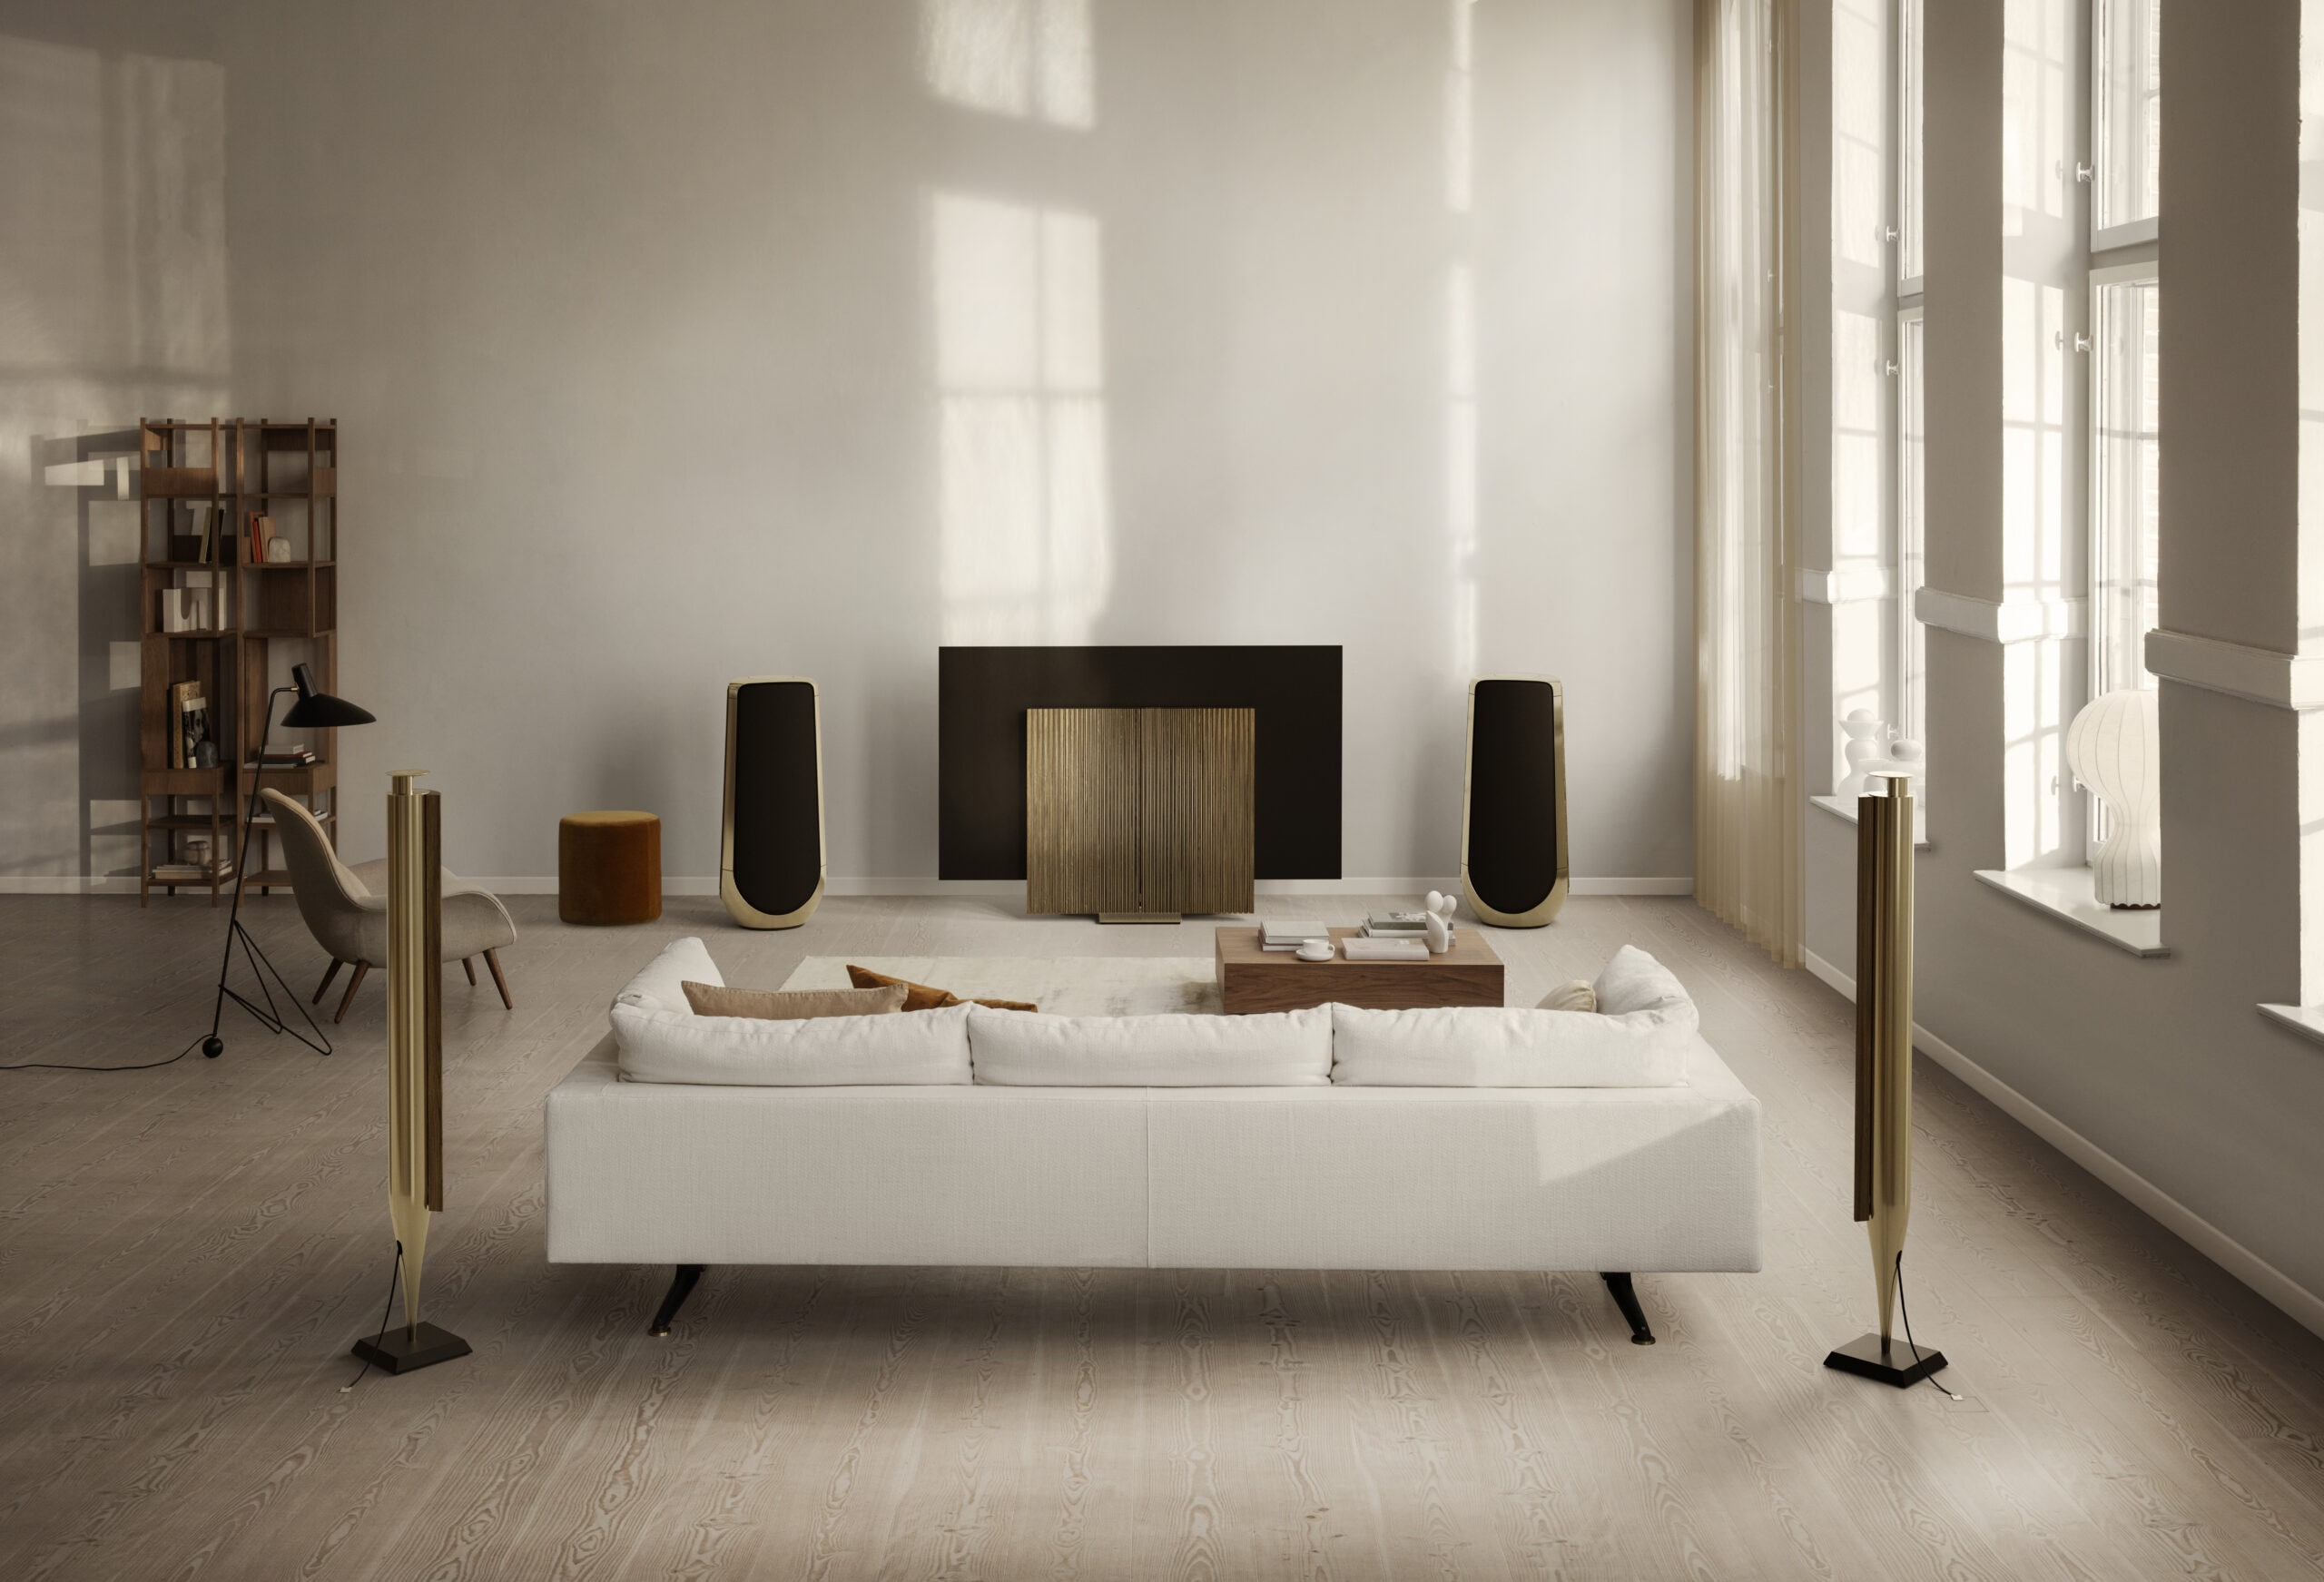 Bang & Olufsen, the beautiful fusion between design, quality and cutting edge